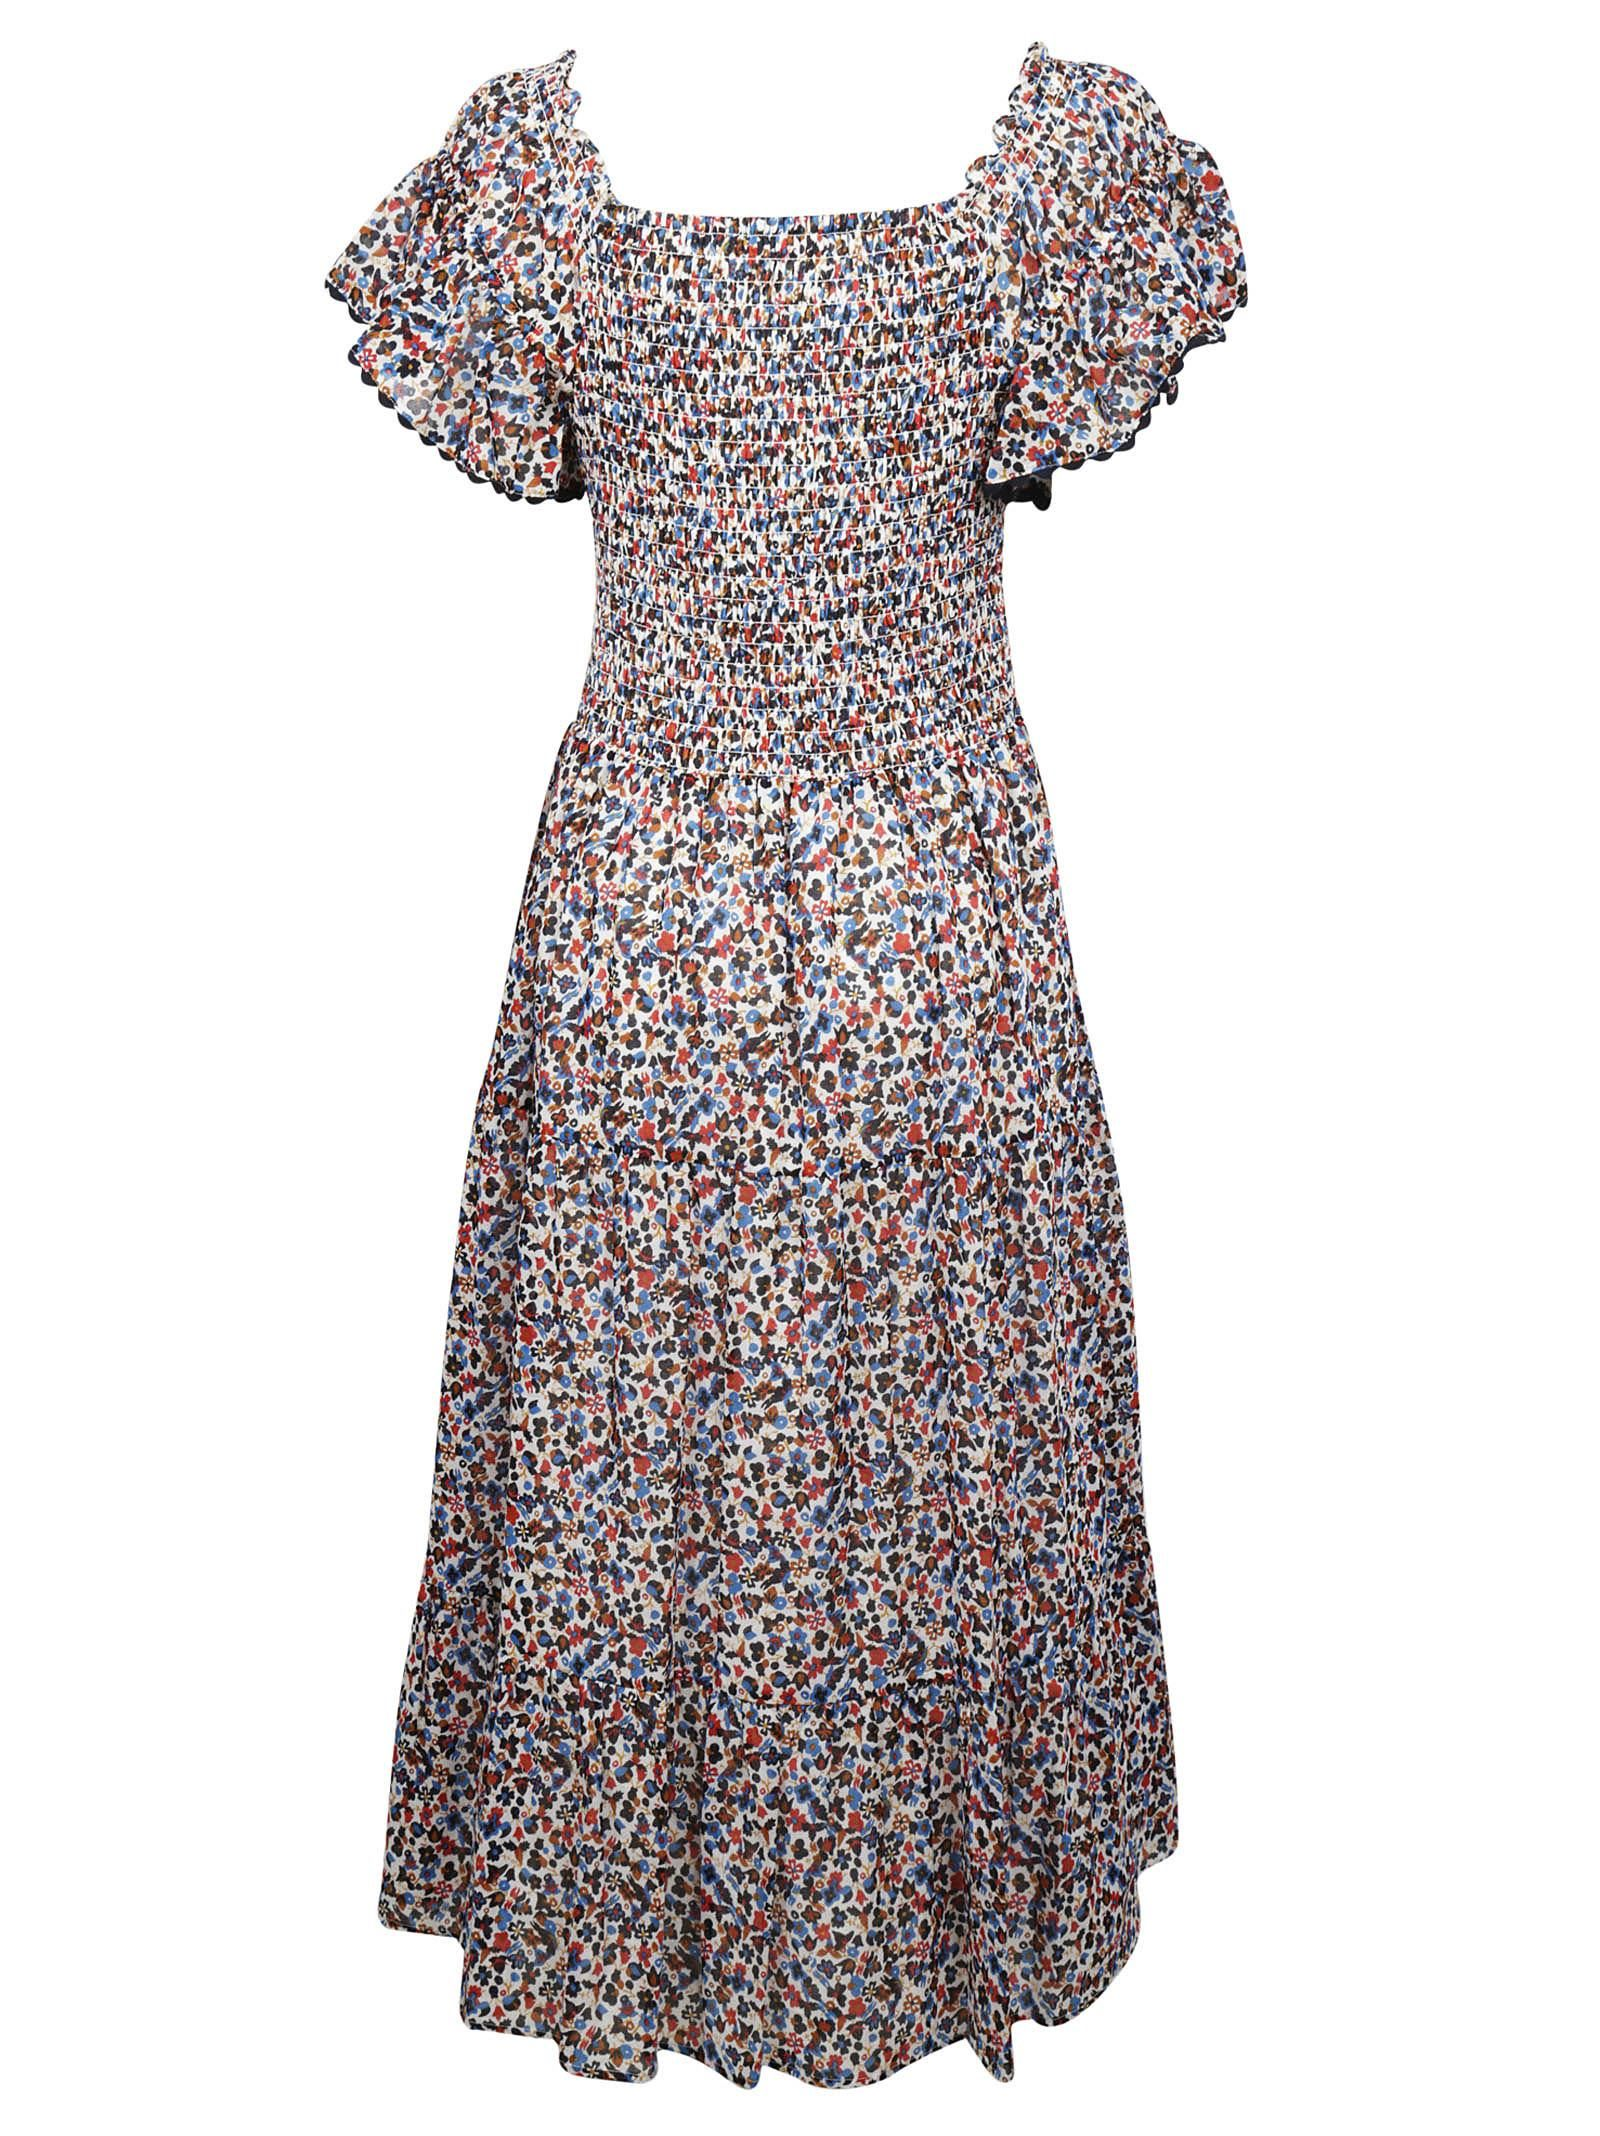 6011ce64c2df TORY BURCH WILDFLOWER SMOCKED DRESS. #toryburch #cloth # | Tory ...